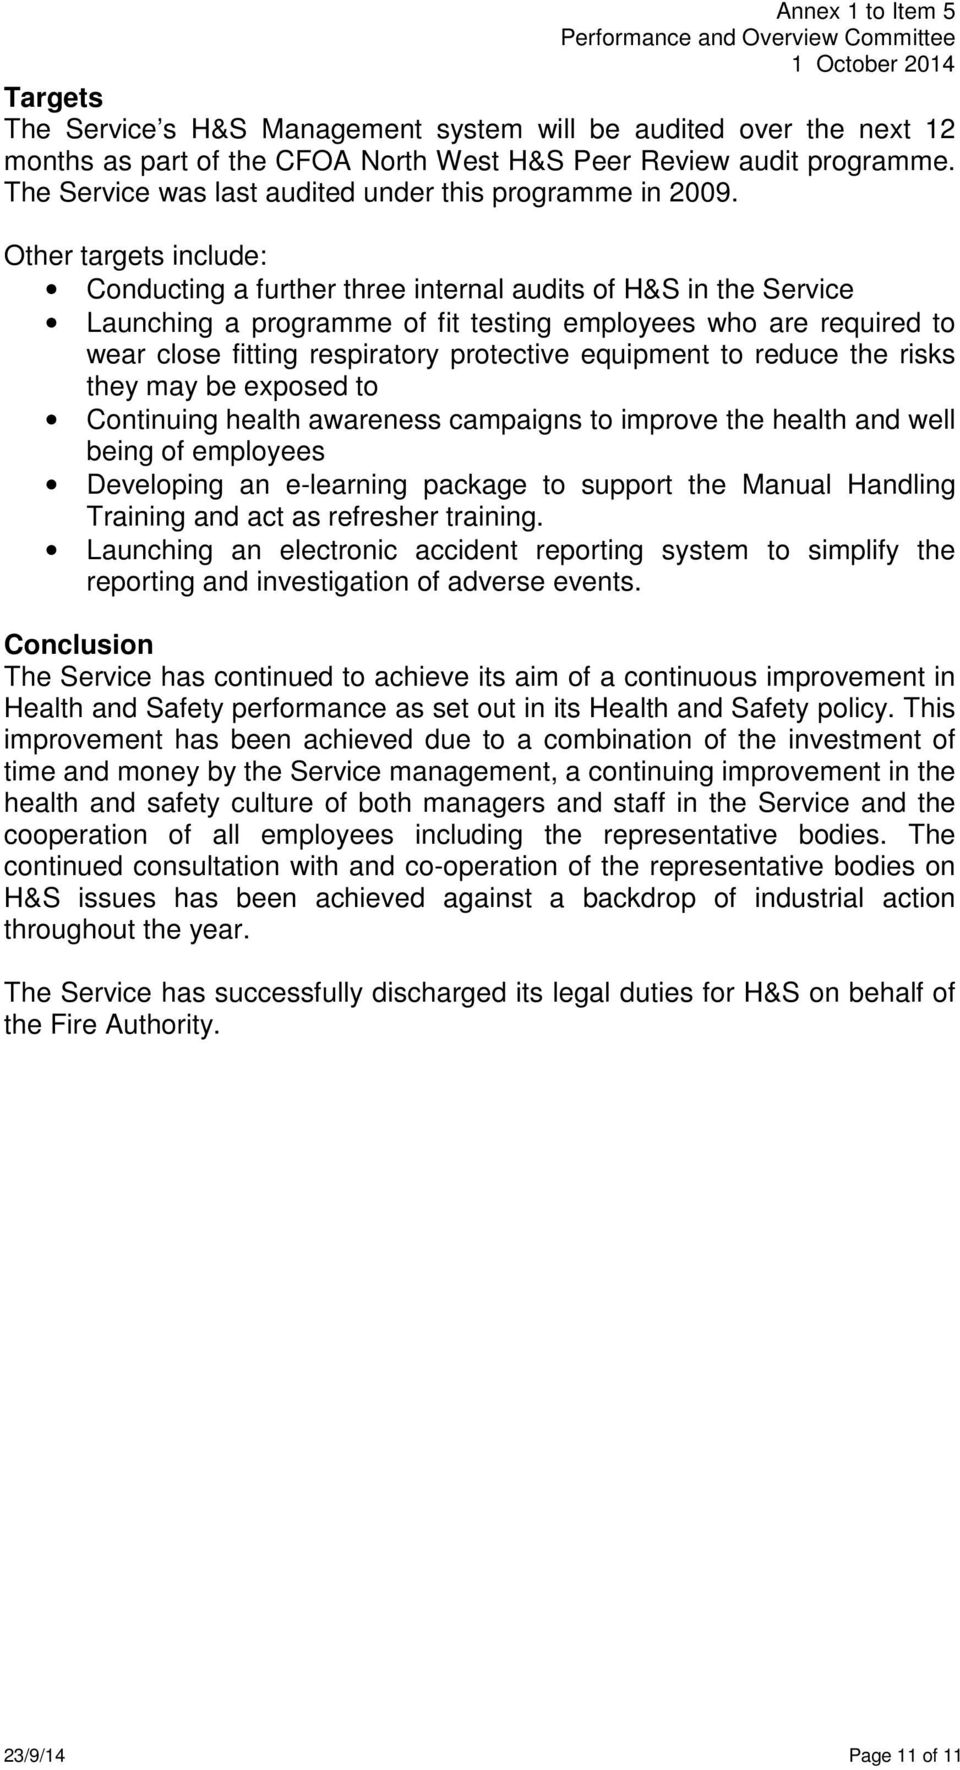 Other targets include: Conducting a further three internal audits of H&S in the Service Launching a programme of fit testing employees who are required to wear close fitting respiratory protective